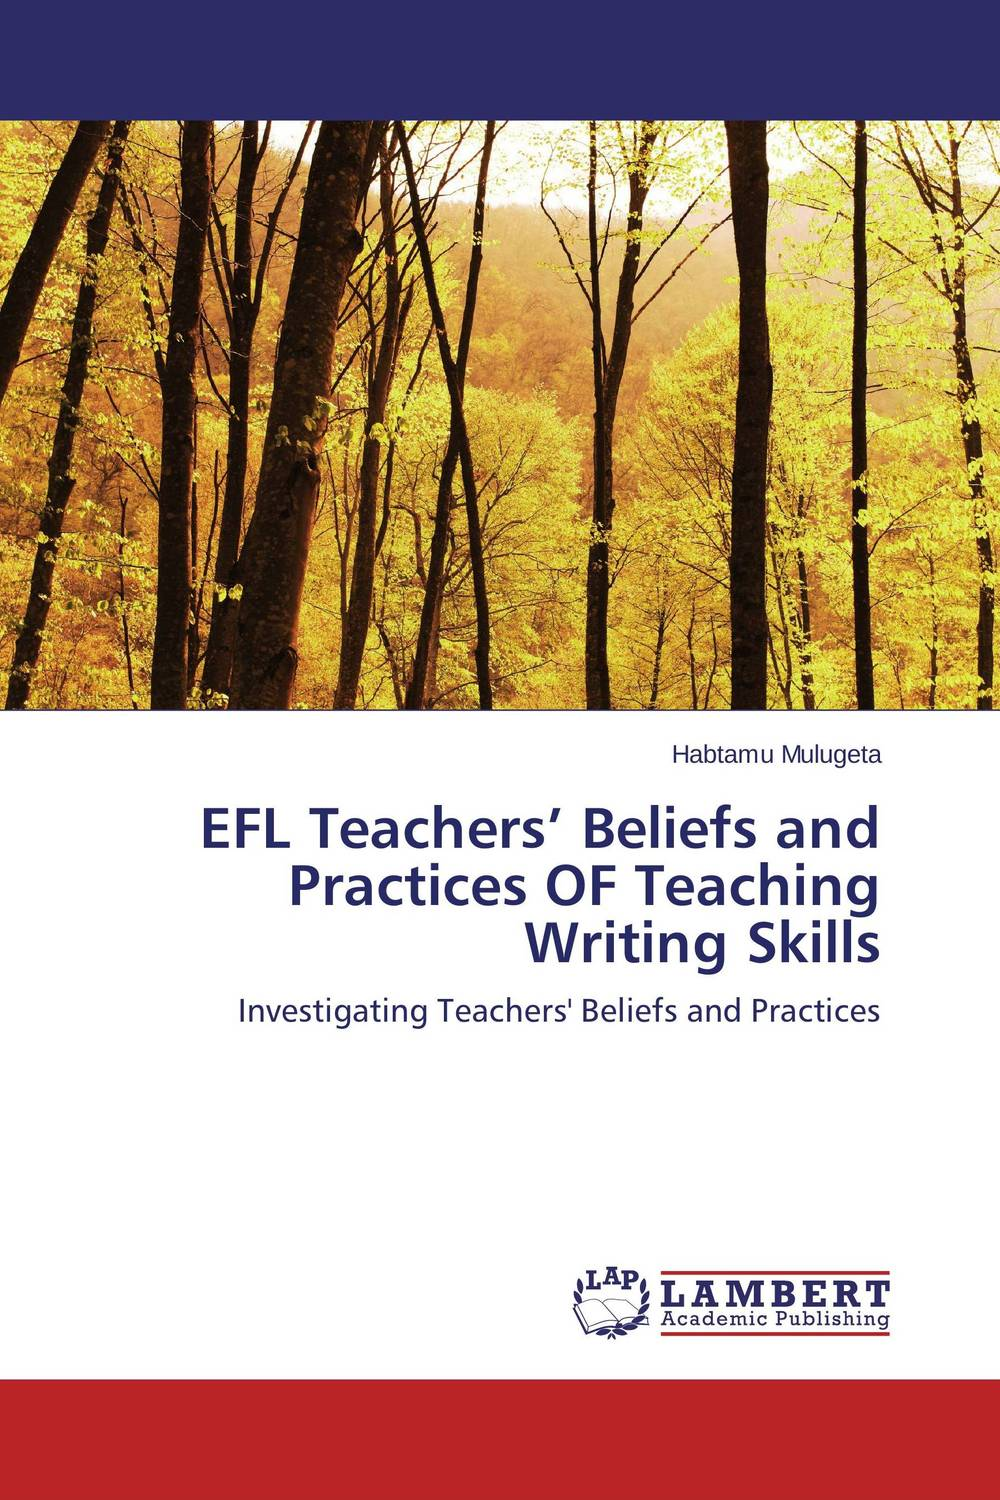 EFL Teachers' Beliefs and Practices OF Teaching Writing Skills folk beliefs and nourishment of environment